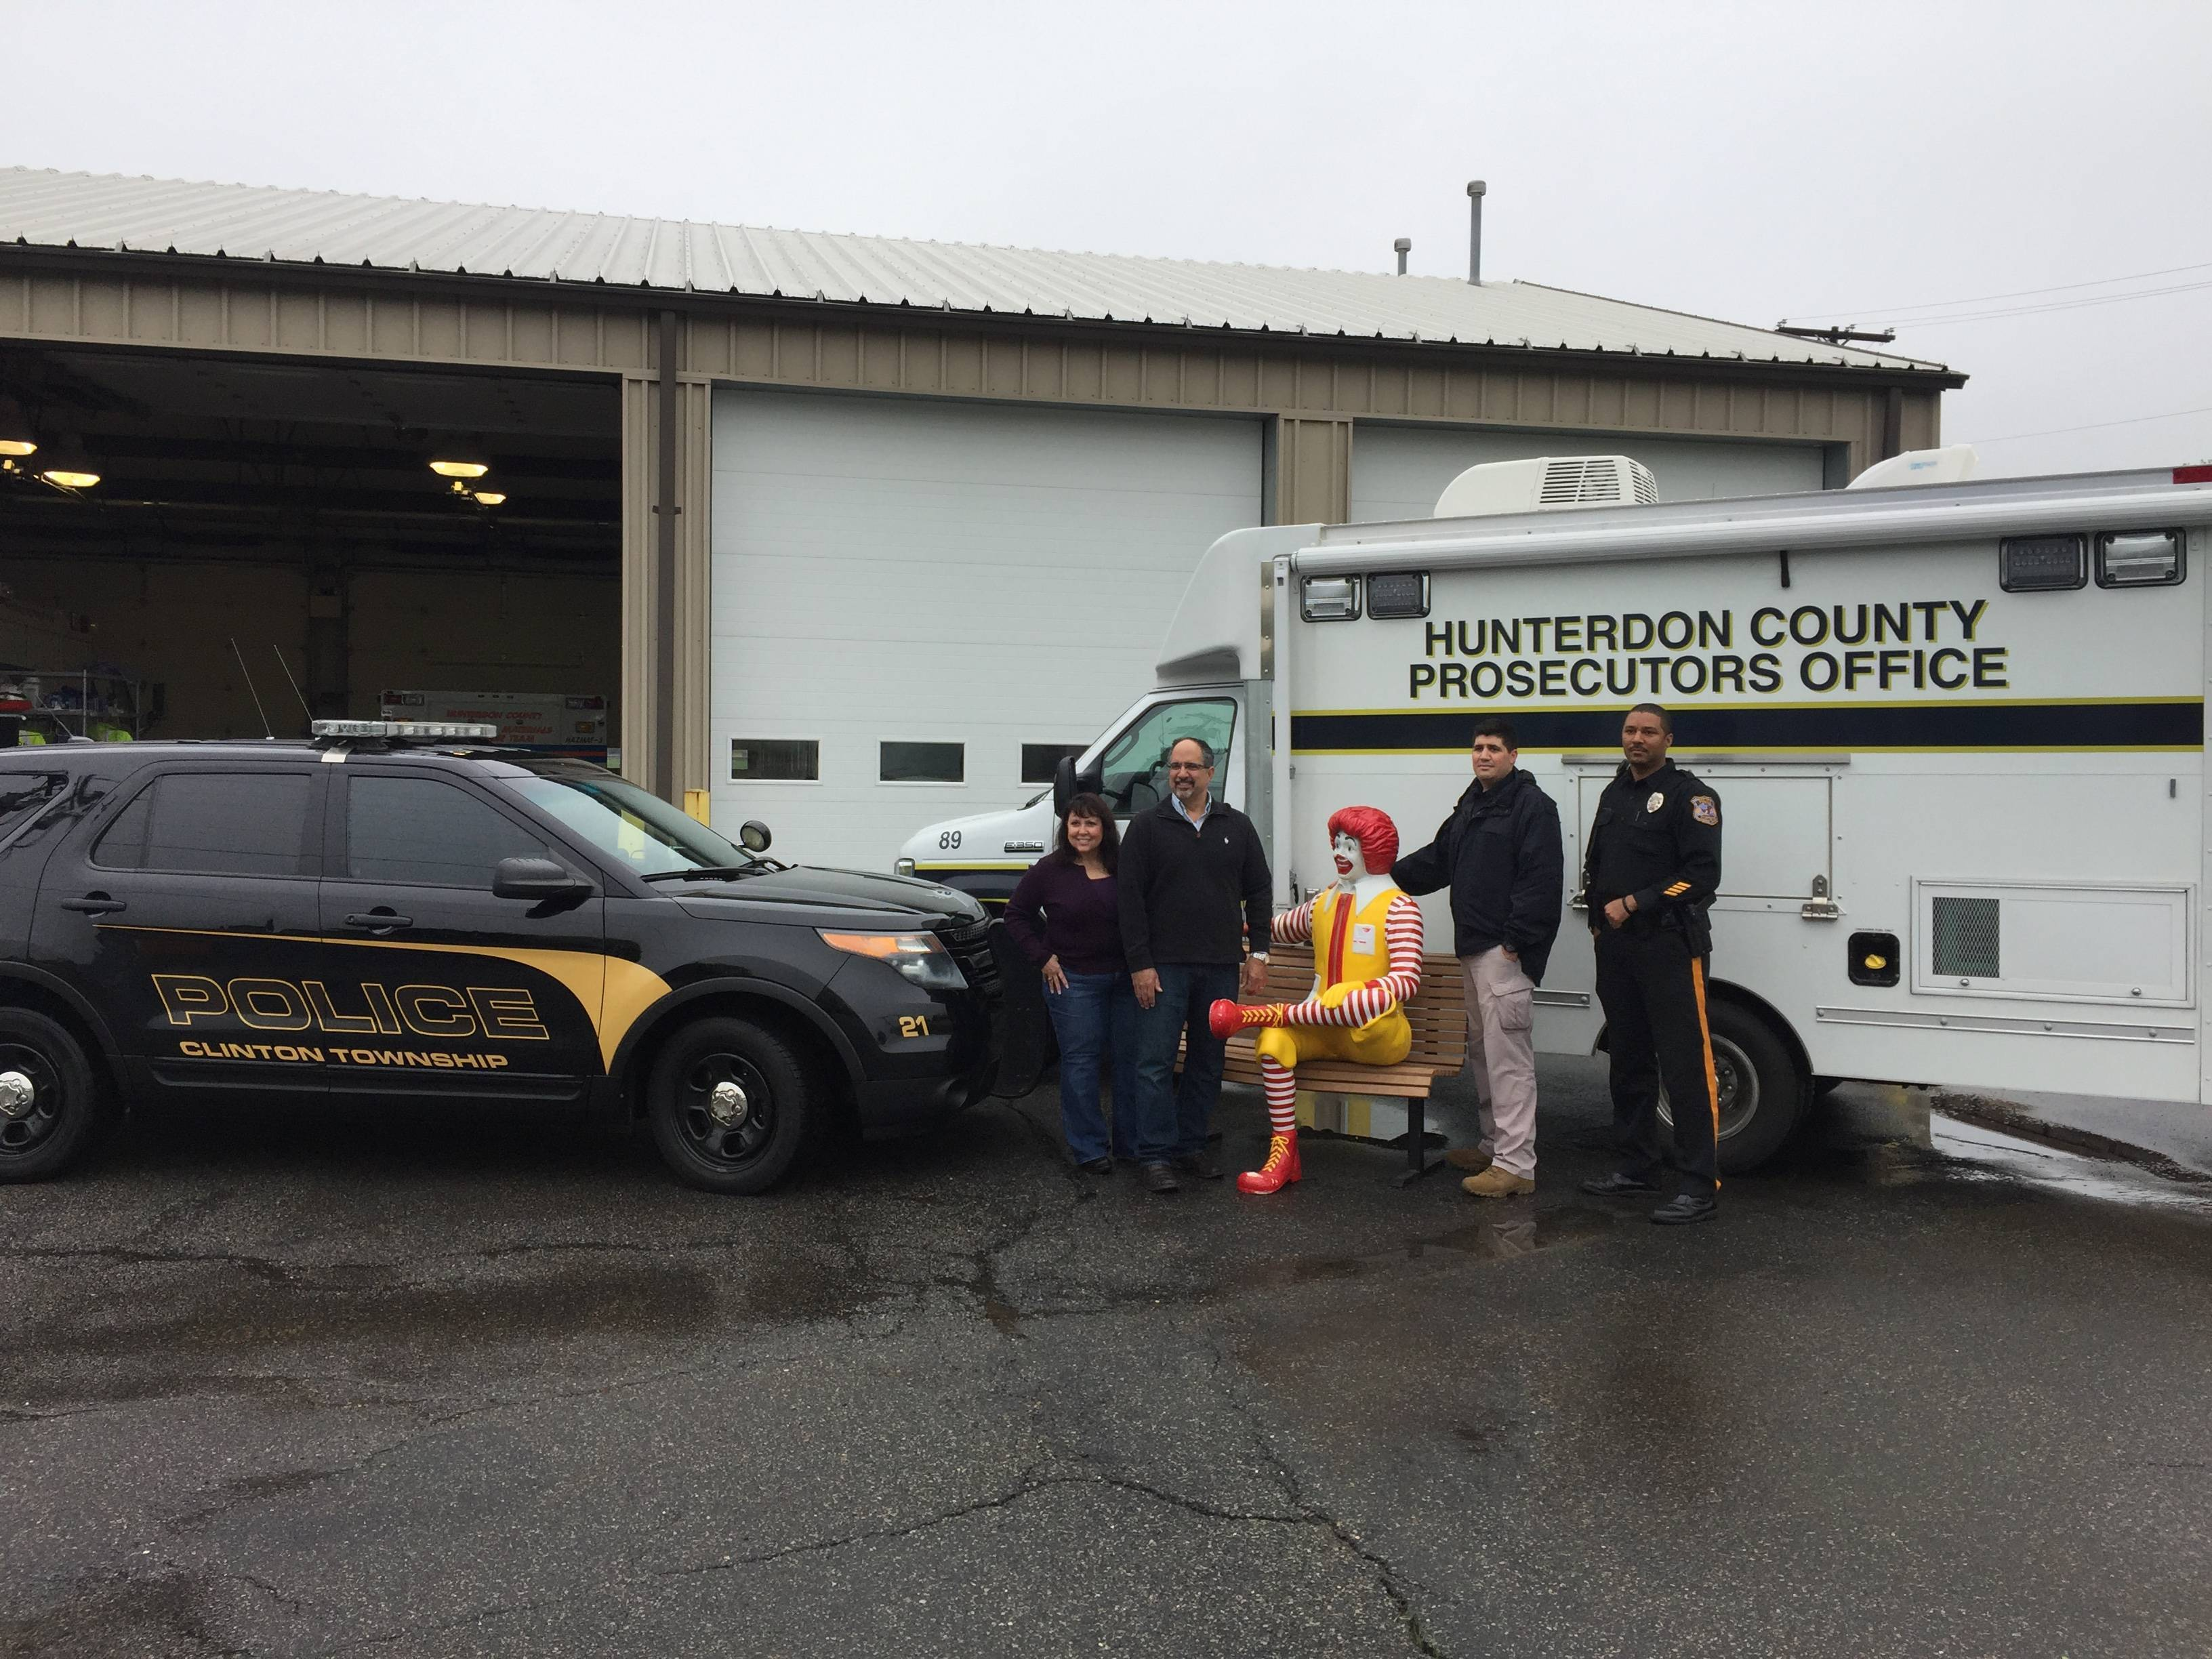 Stolen Ronald McDonald statue recovered undamaged